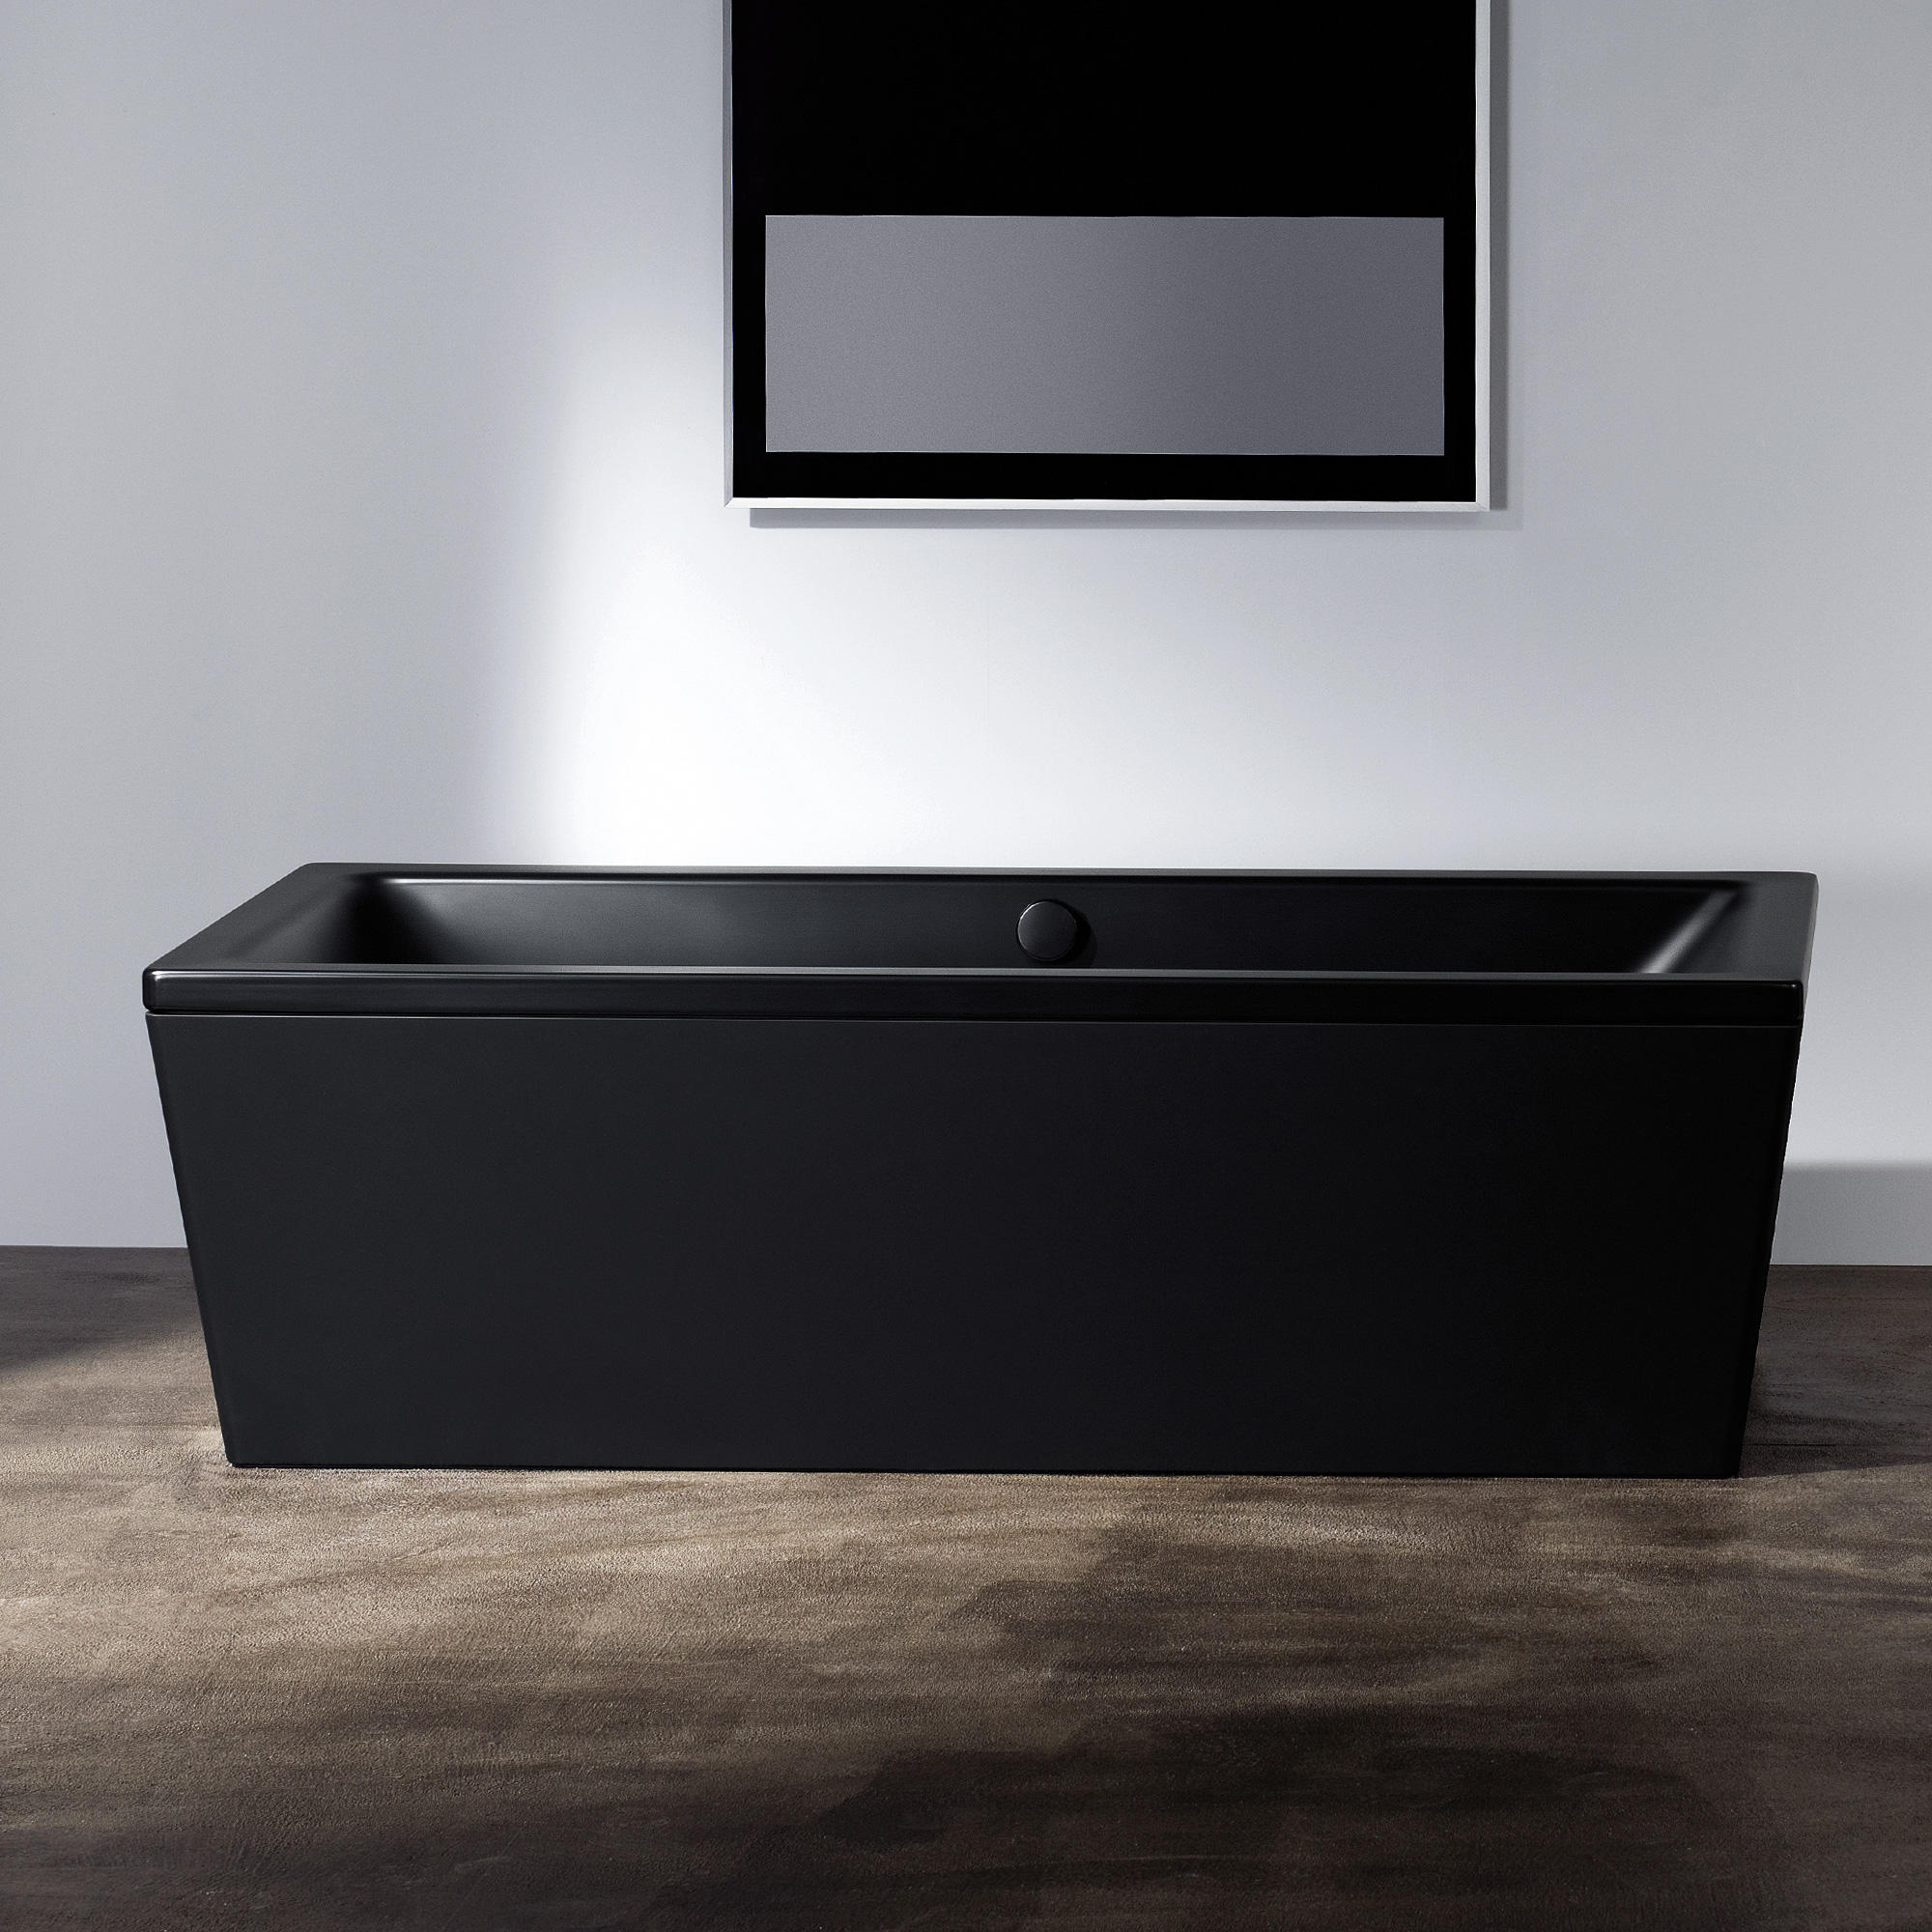 badewanne schwarz matt schwimmbad und saunen. Black Bedroom Furniture Sets. Home Design Ideas